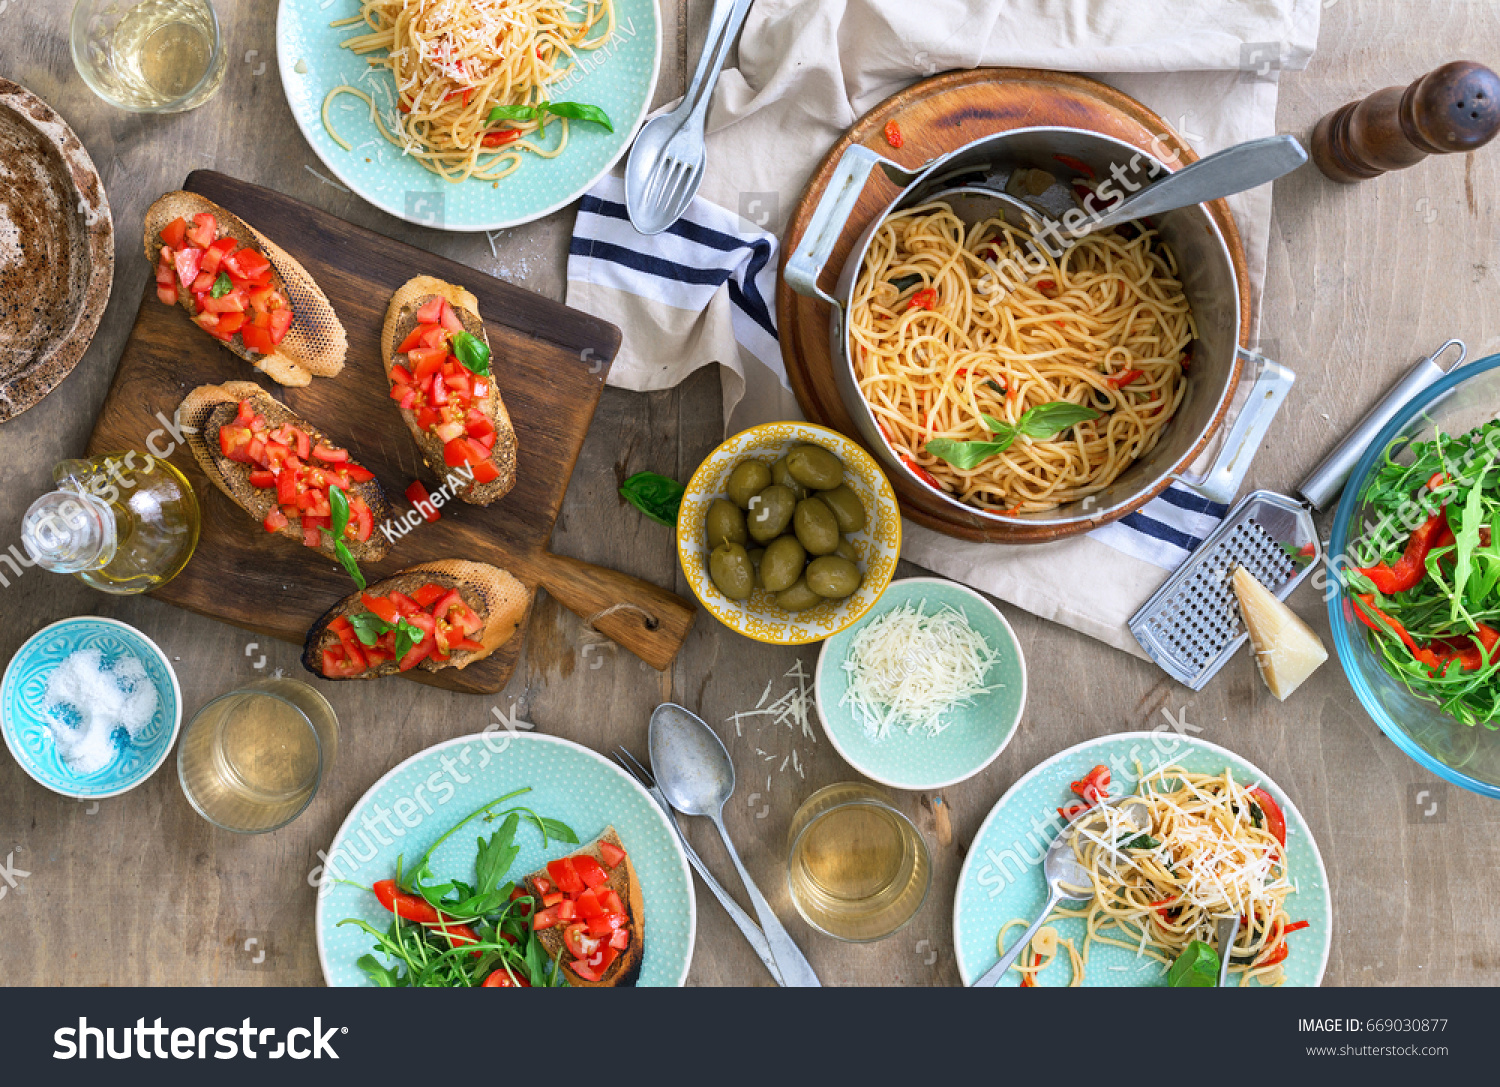 Italian Dinner Table With Pasta, Appetizers And White Wine, Top View